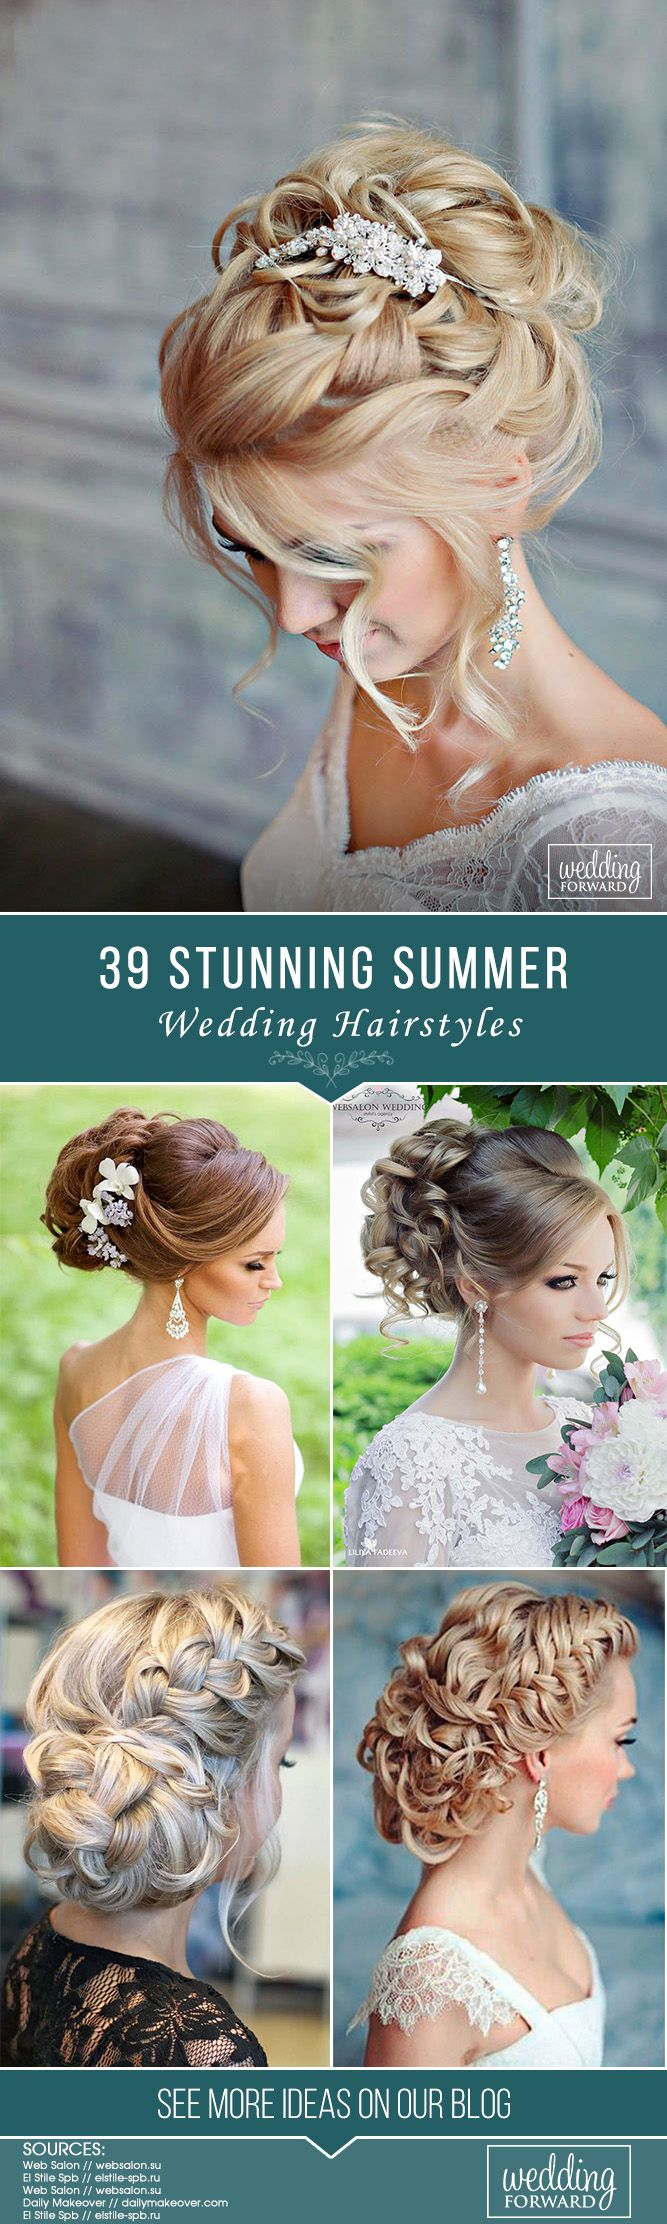 39 Stunning Summer Wedding Hairstyles ❤ Summer wedding hairstyles are differen...